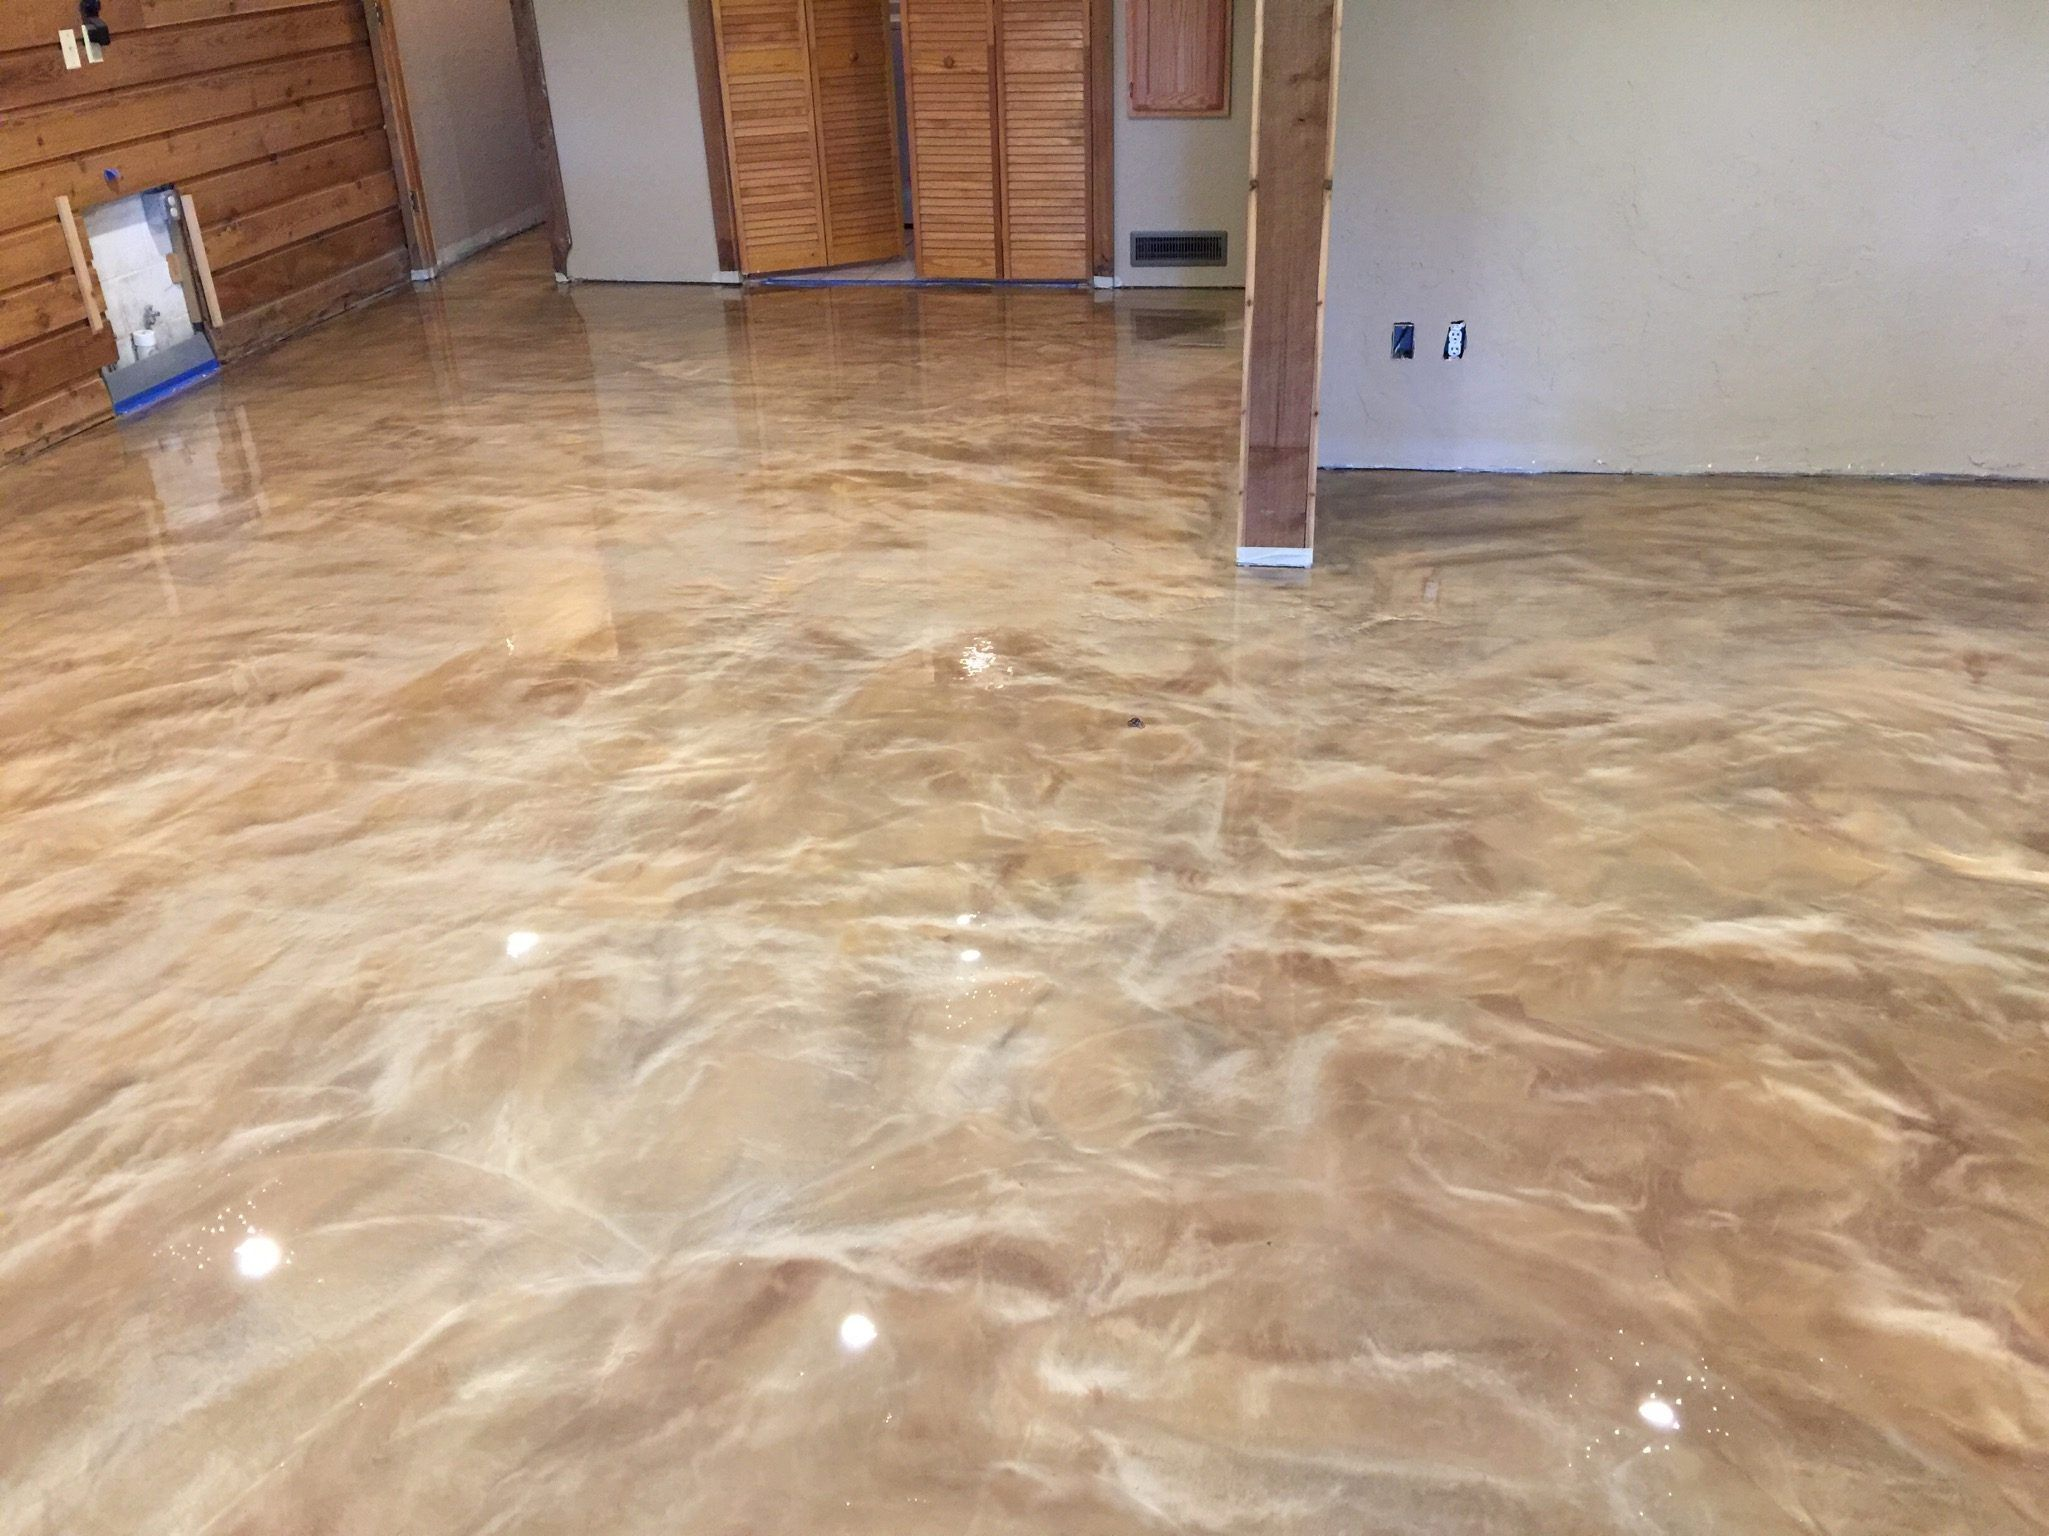 material epoxy basement basemen floors perfect self was our concrete cured leveling after for coating wanted water covering and level durable the r installed triple bright a customer proof porfolio custom floor